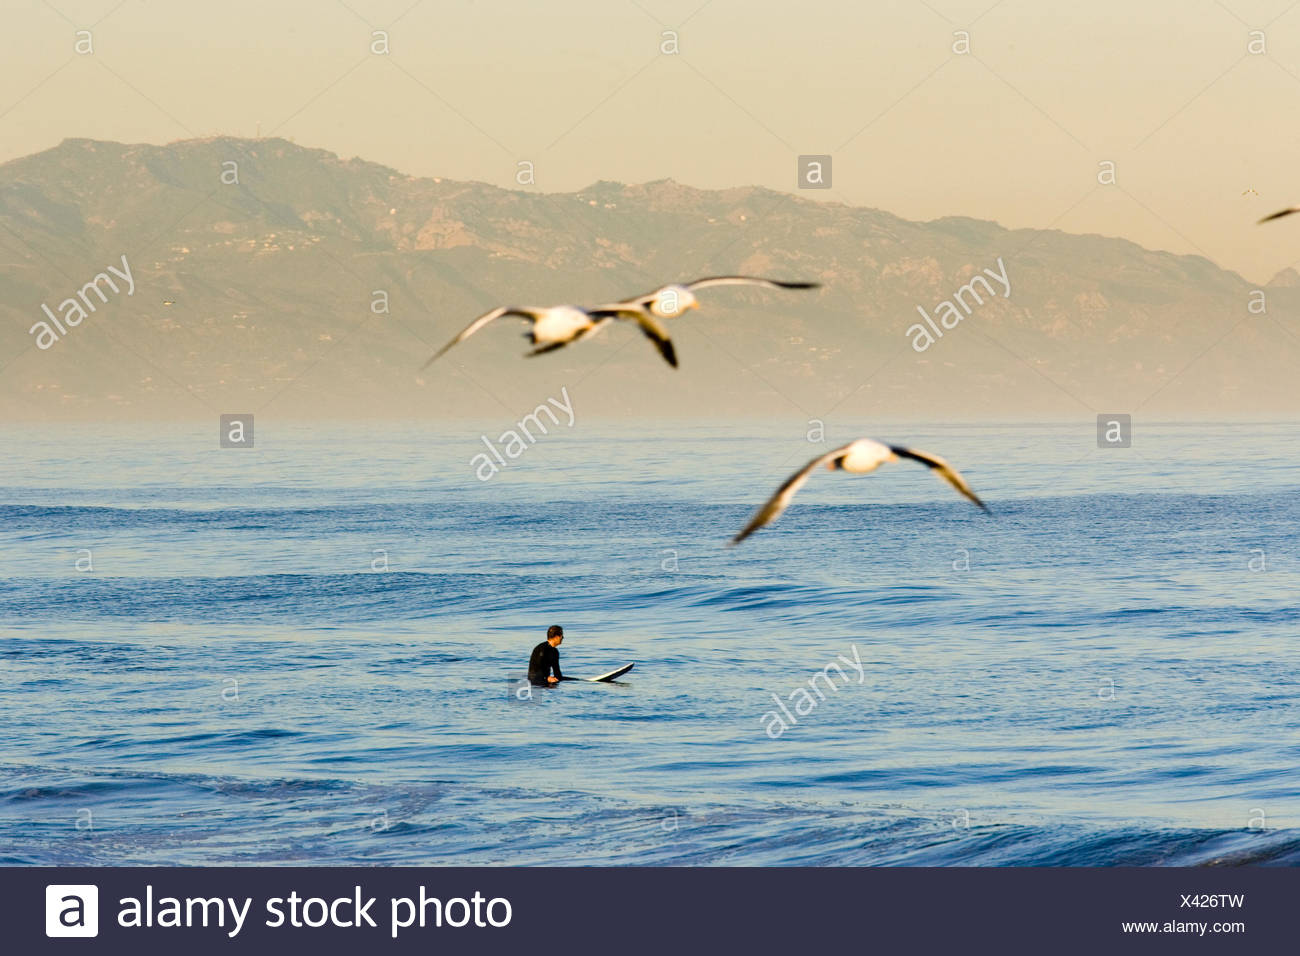 A lone surfer patiently awaits the right wave off of Redondo Beach, California. - Stock Image